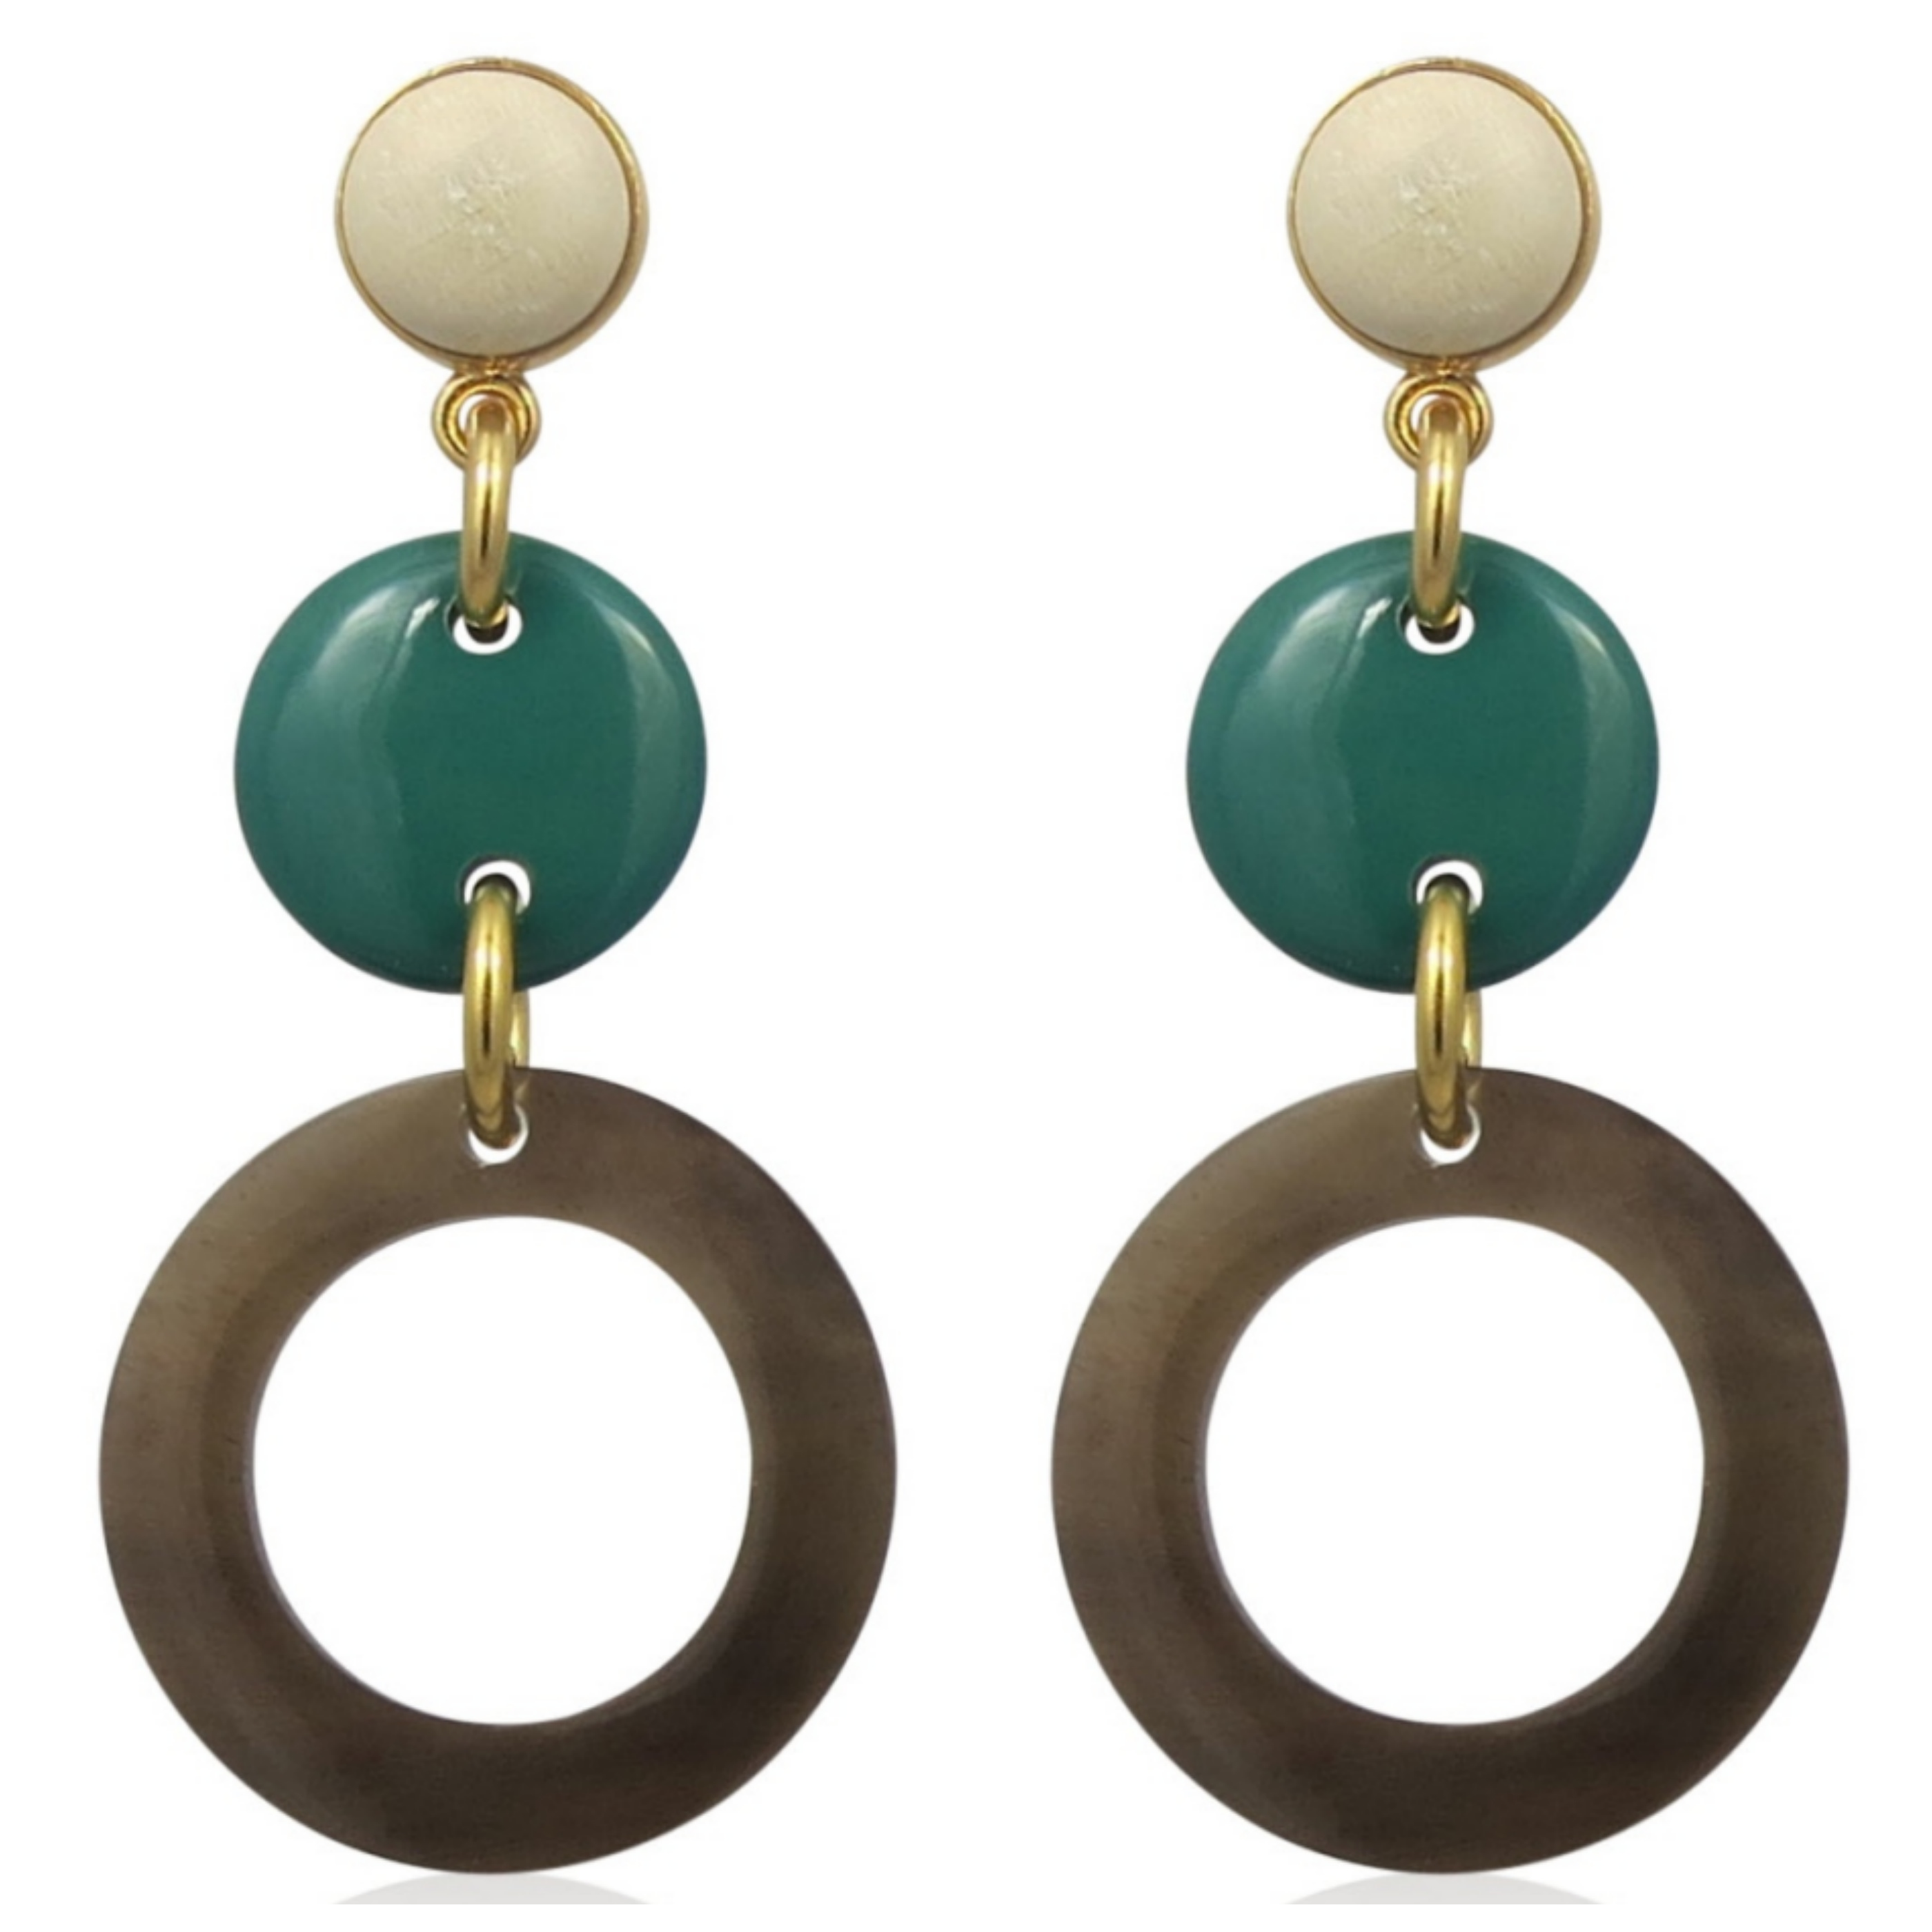 Lara Design - Earrings Green White A